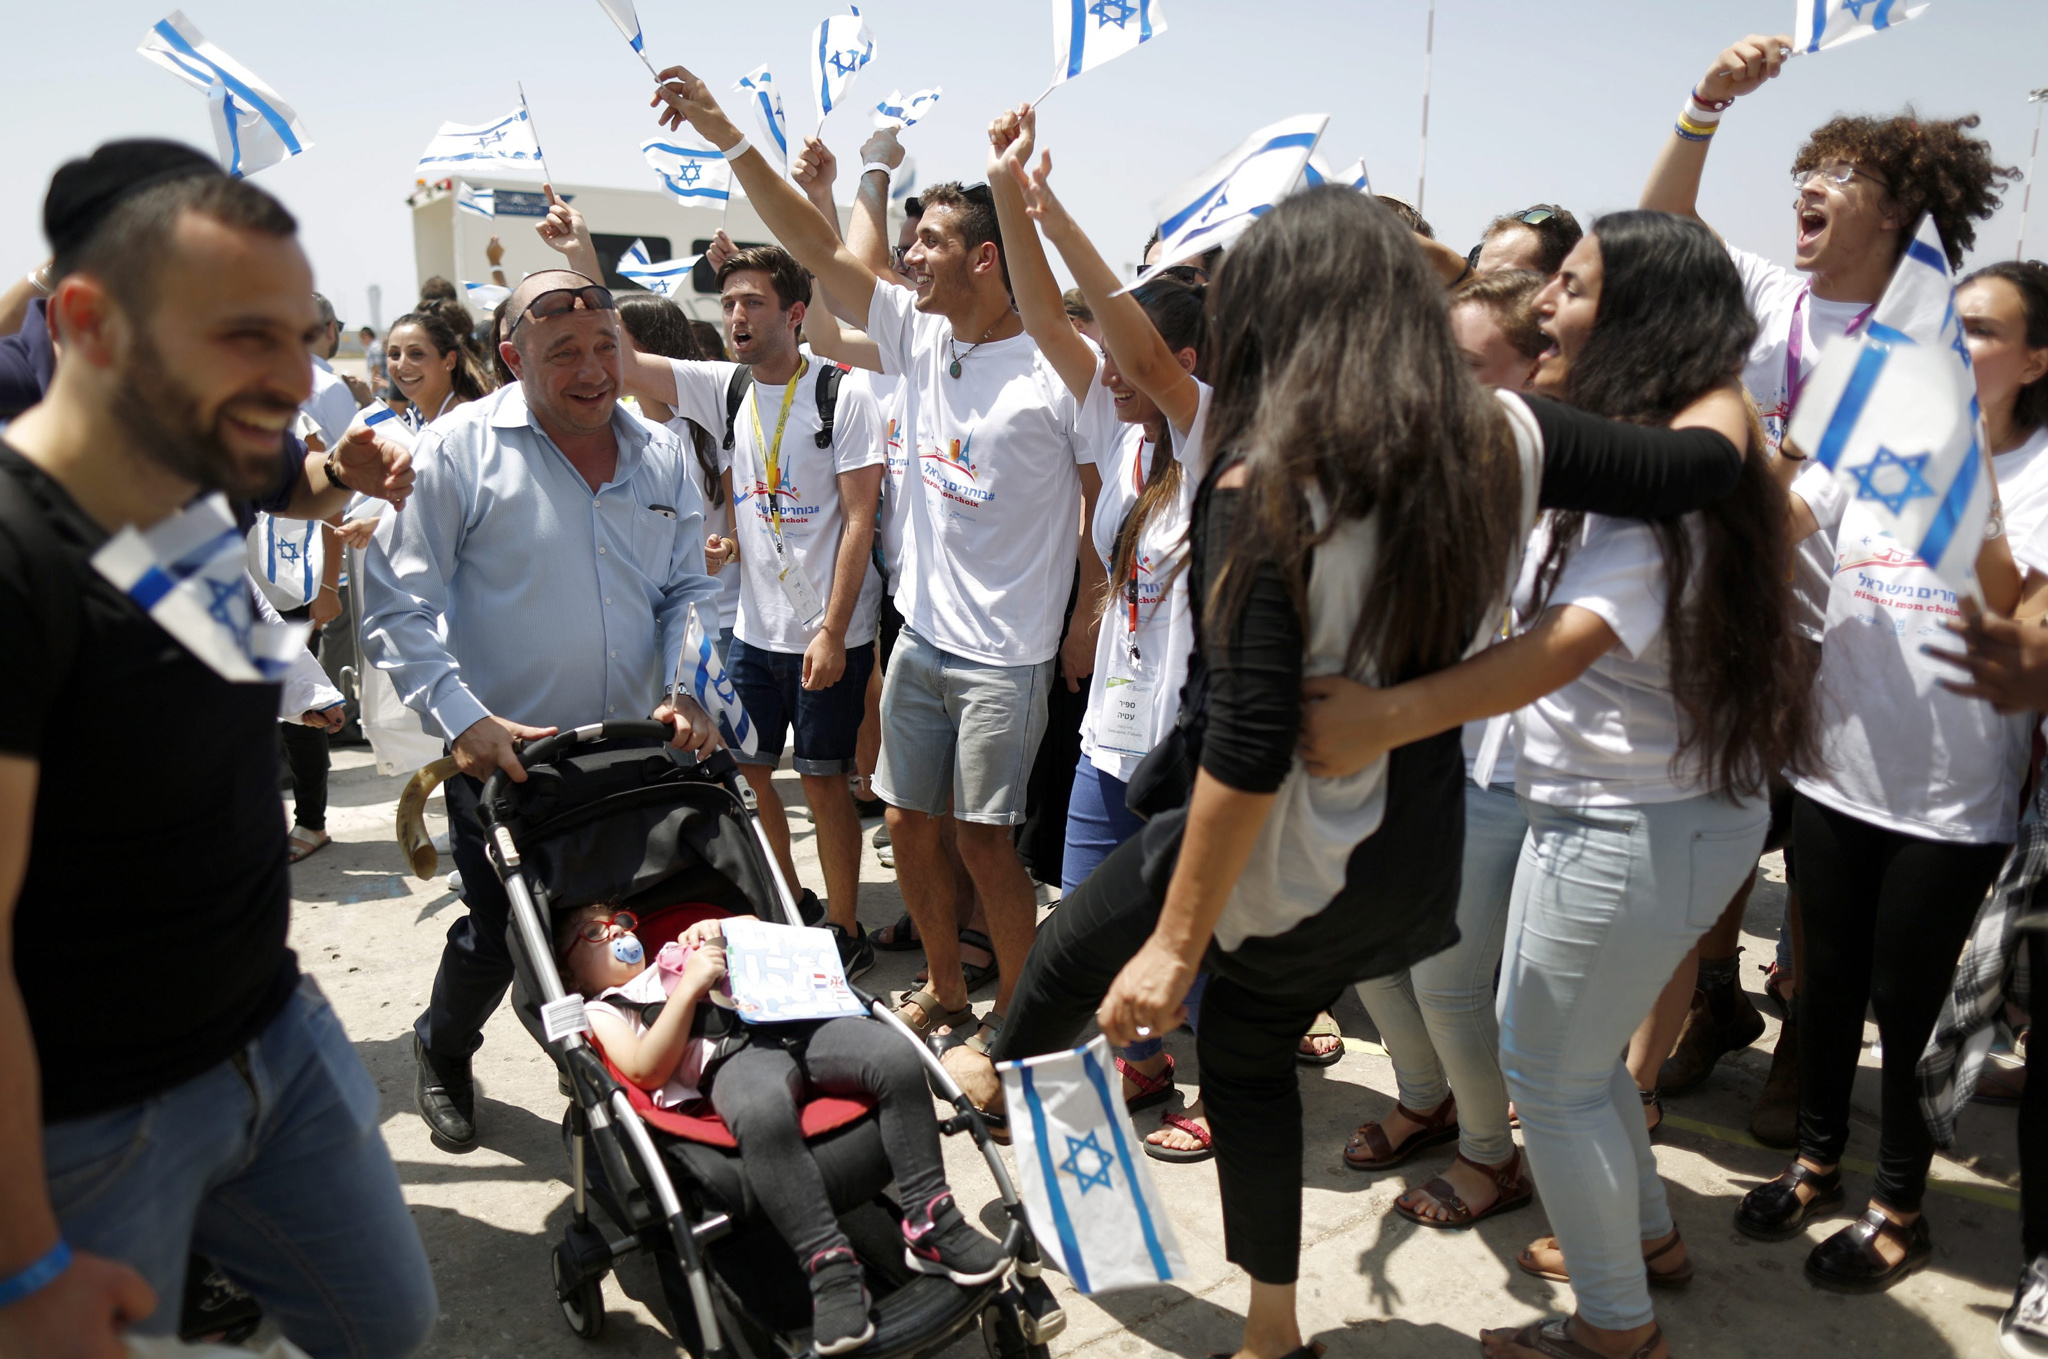 sraelis wave national flags as they welcome newly-arrived Jewish immigrants from France at Ben Gurion Airport, in Lod, near Tel Aviv, Israel,